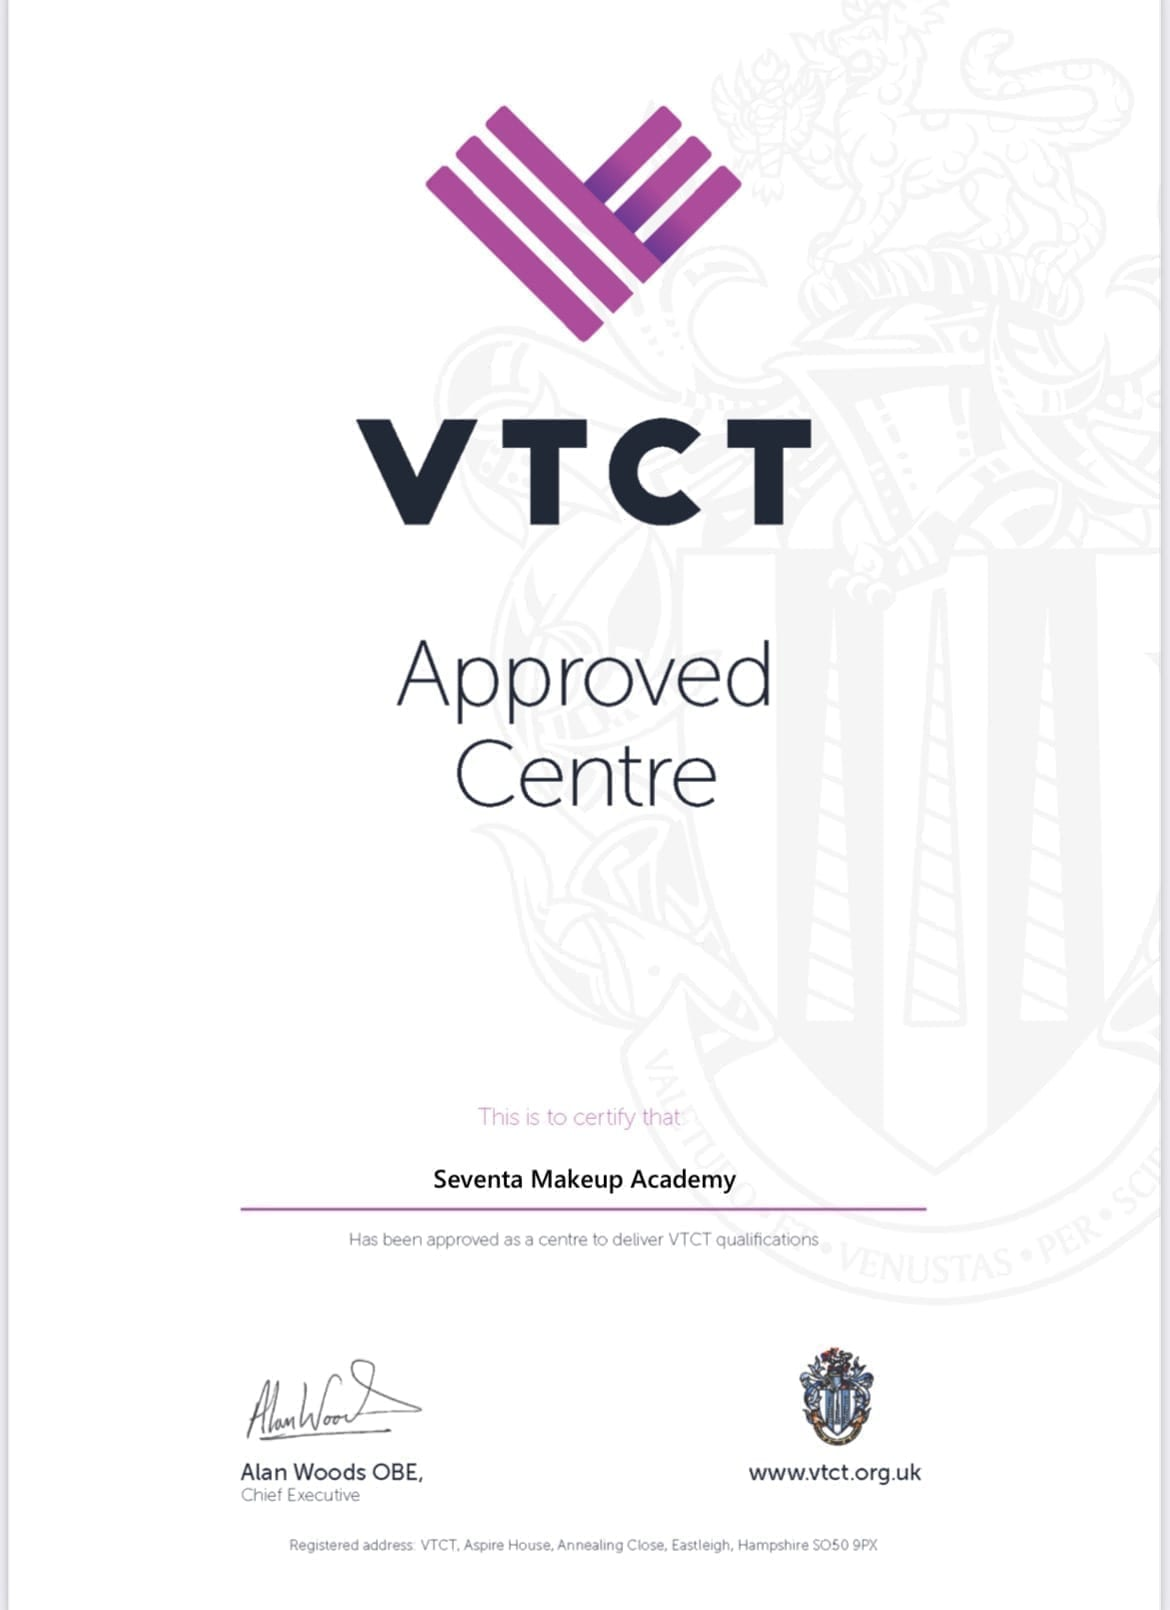 VTCT Approved Centre - Seventa Makeup Academy